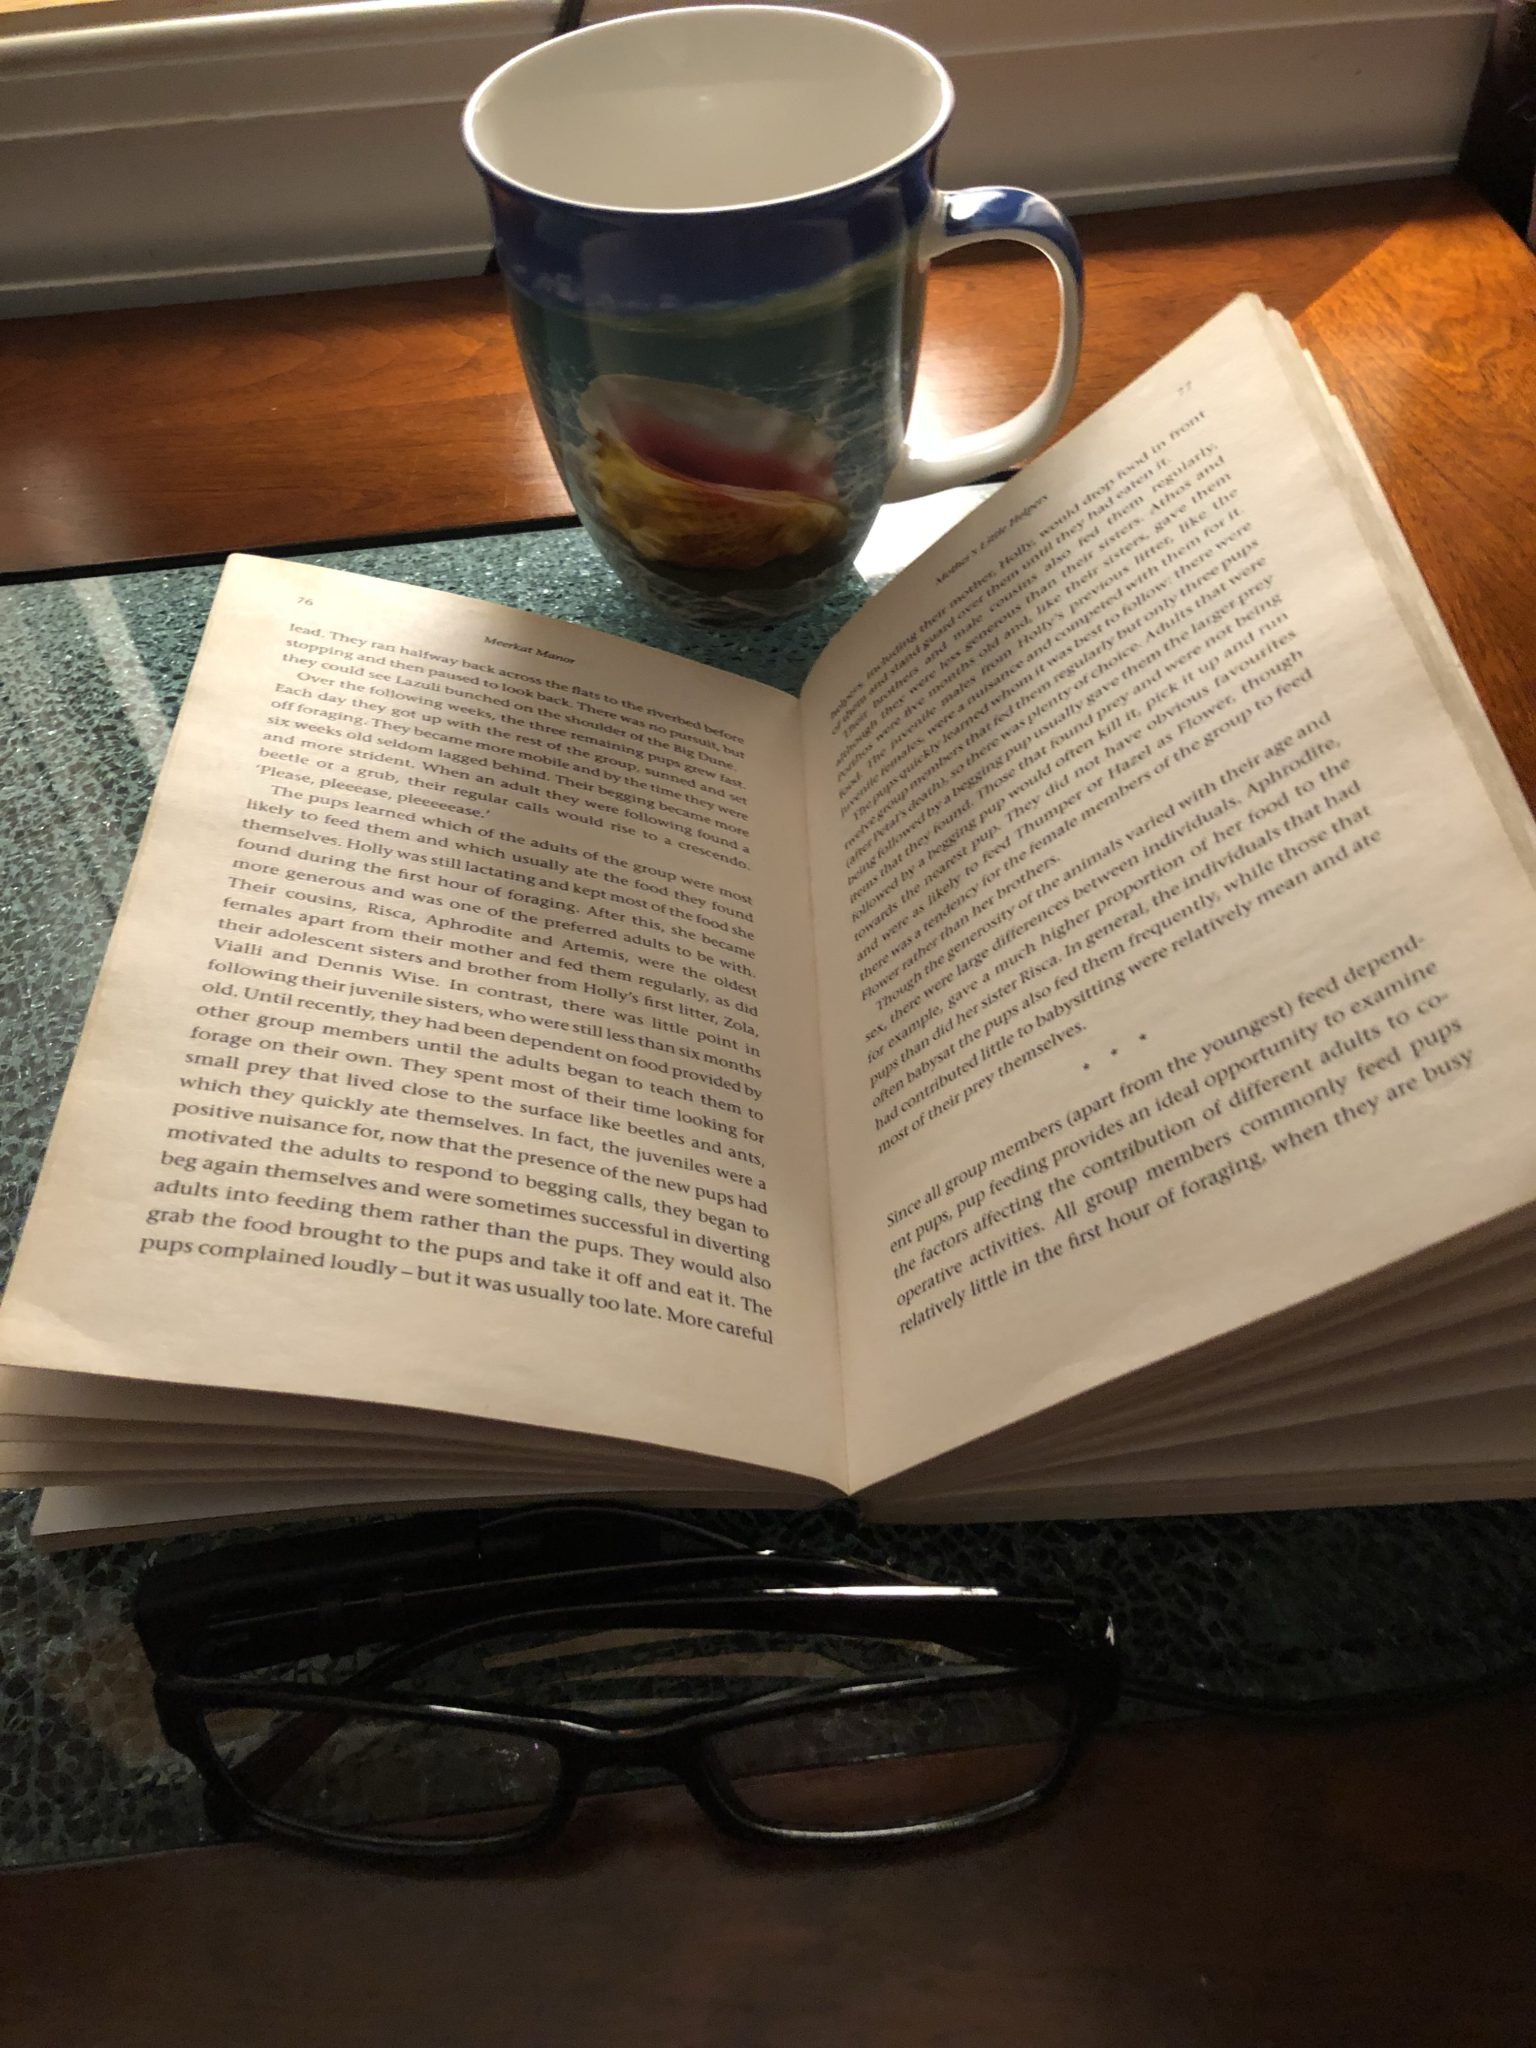 A book open on a table next to glasses and a coffee cup.